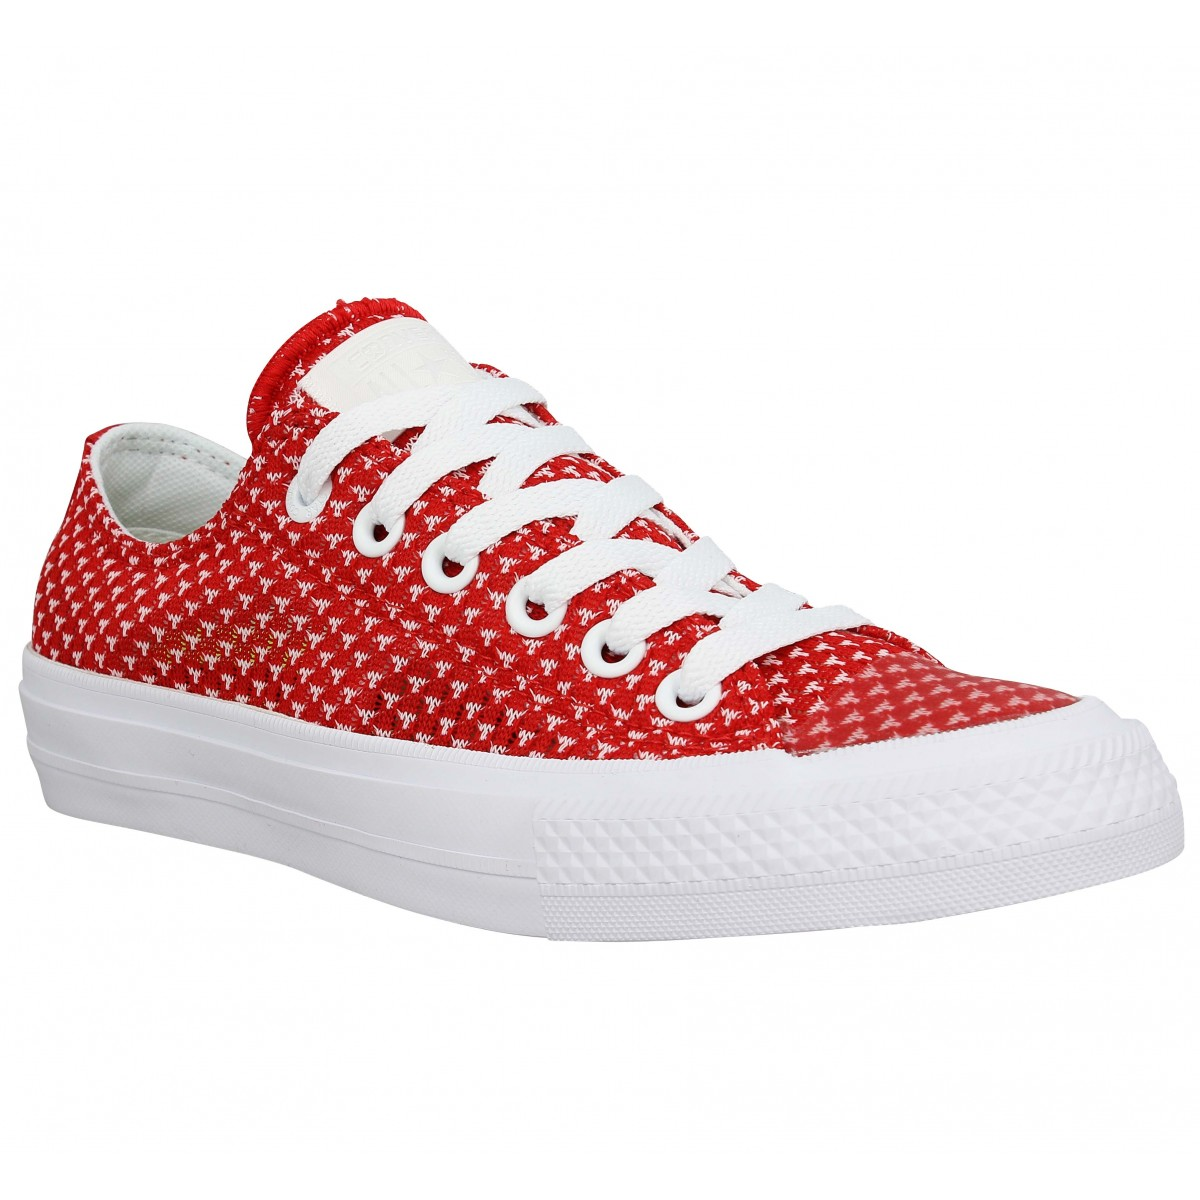 Baskets CONVERSE Chuck Taylor All Star II toile Femme Rouge Blanc